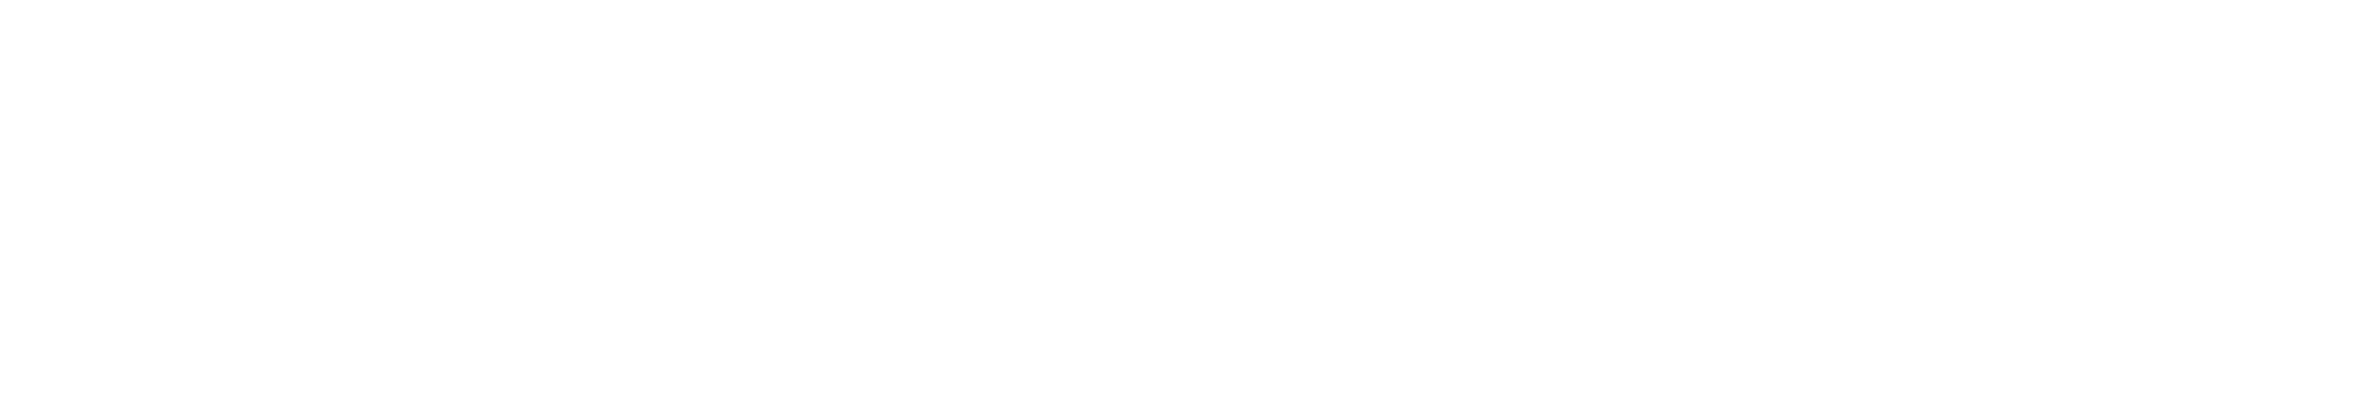 Ford F-150 Raptor logo